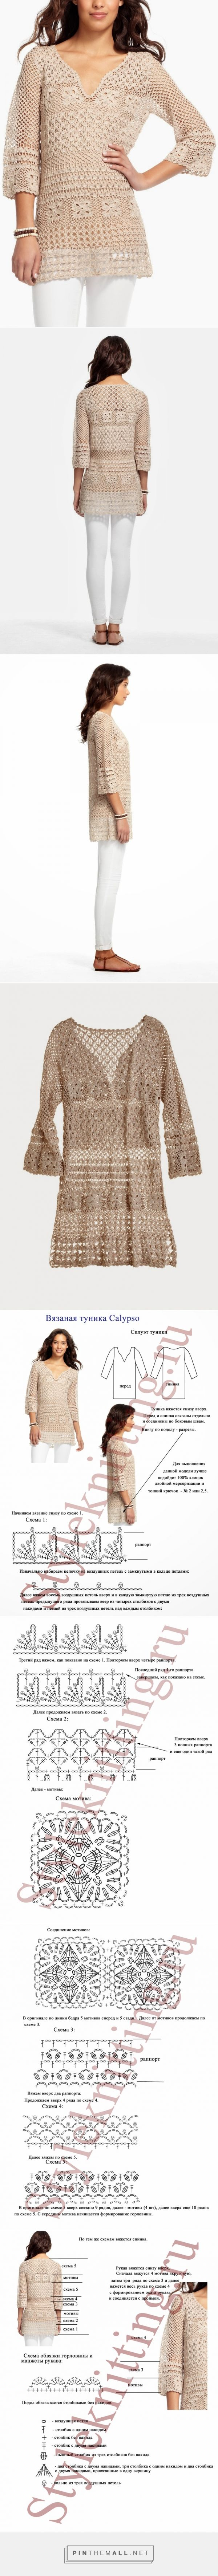 Crochet Patterns to Try: Crochet Charts for Calypso Tunic - Something to Mend a Bad Day - created via https://pinthemall.net